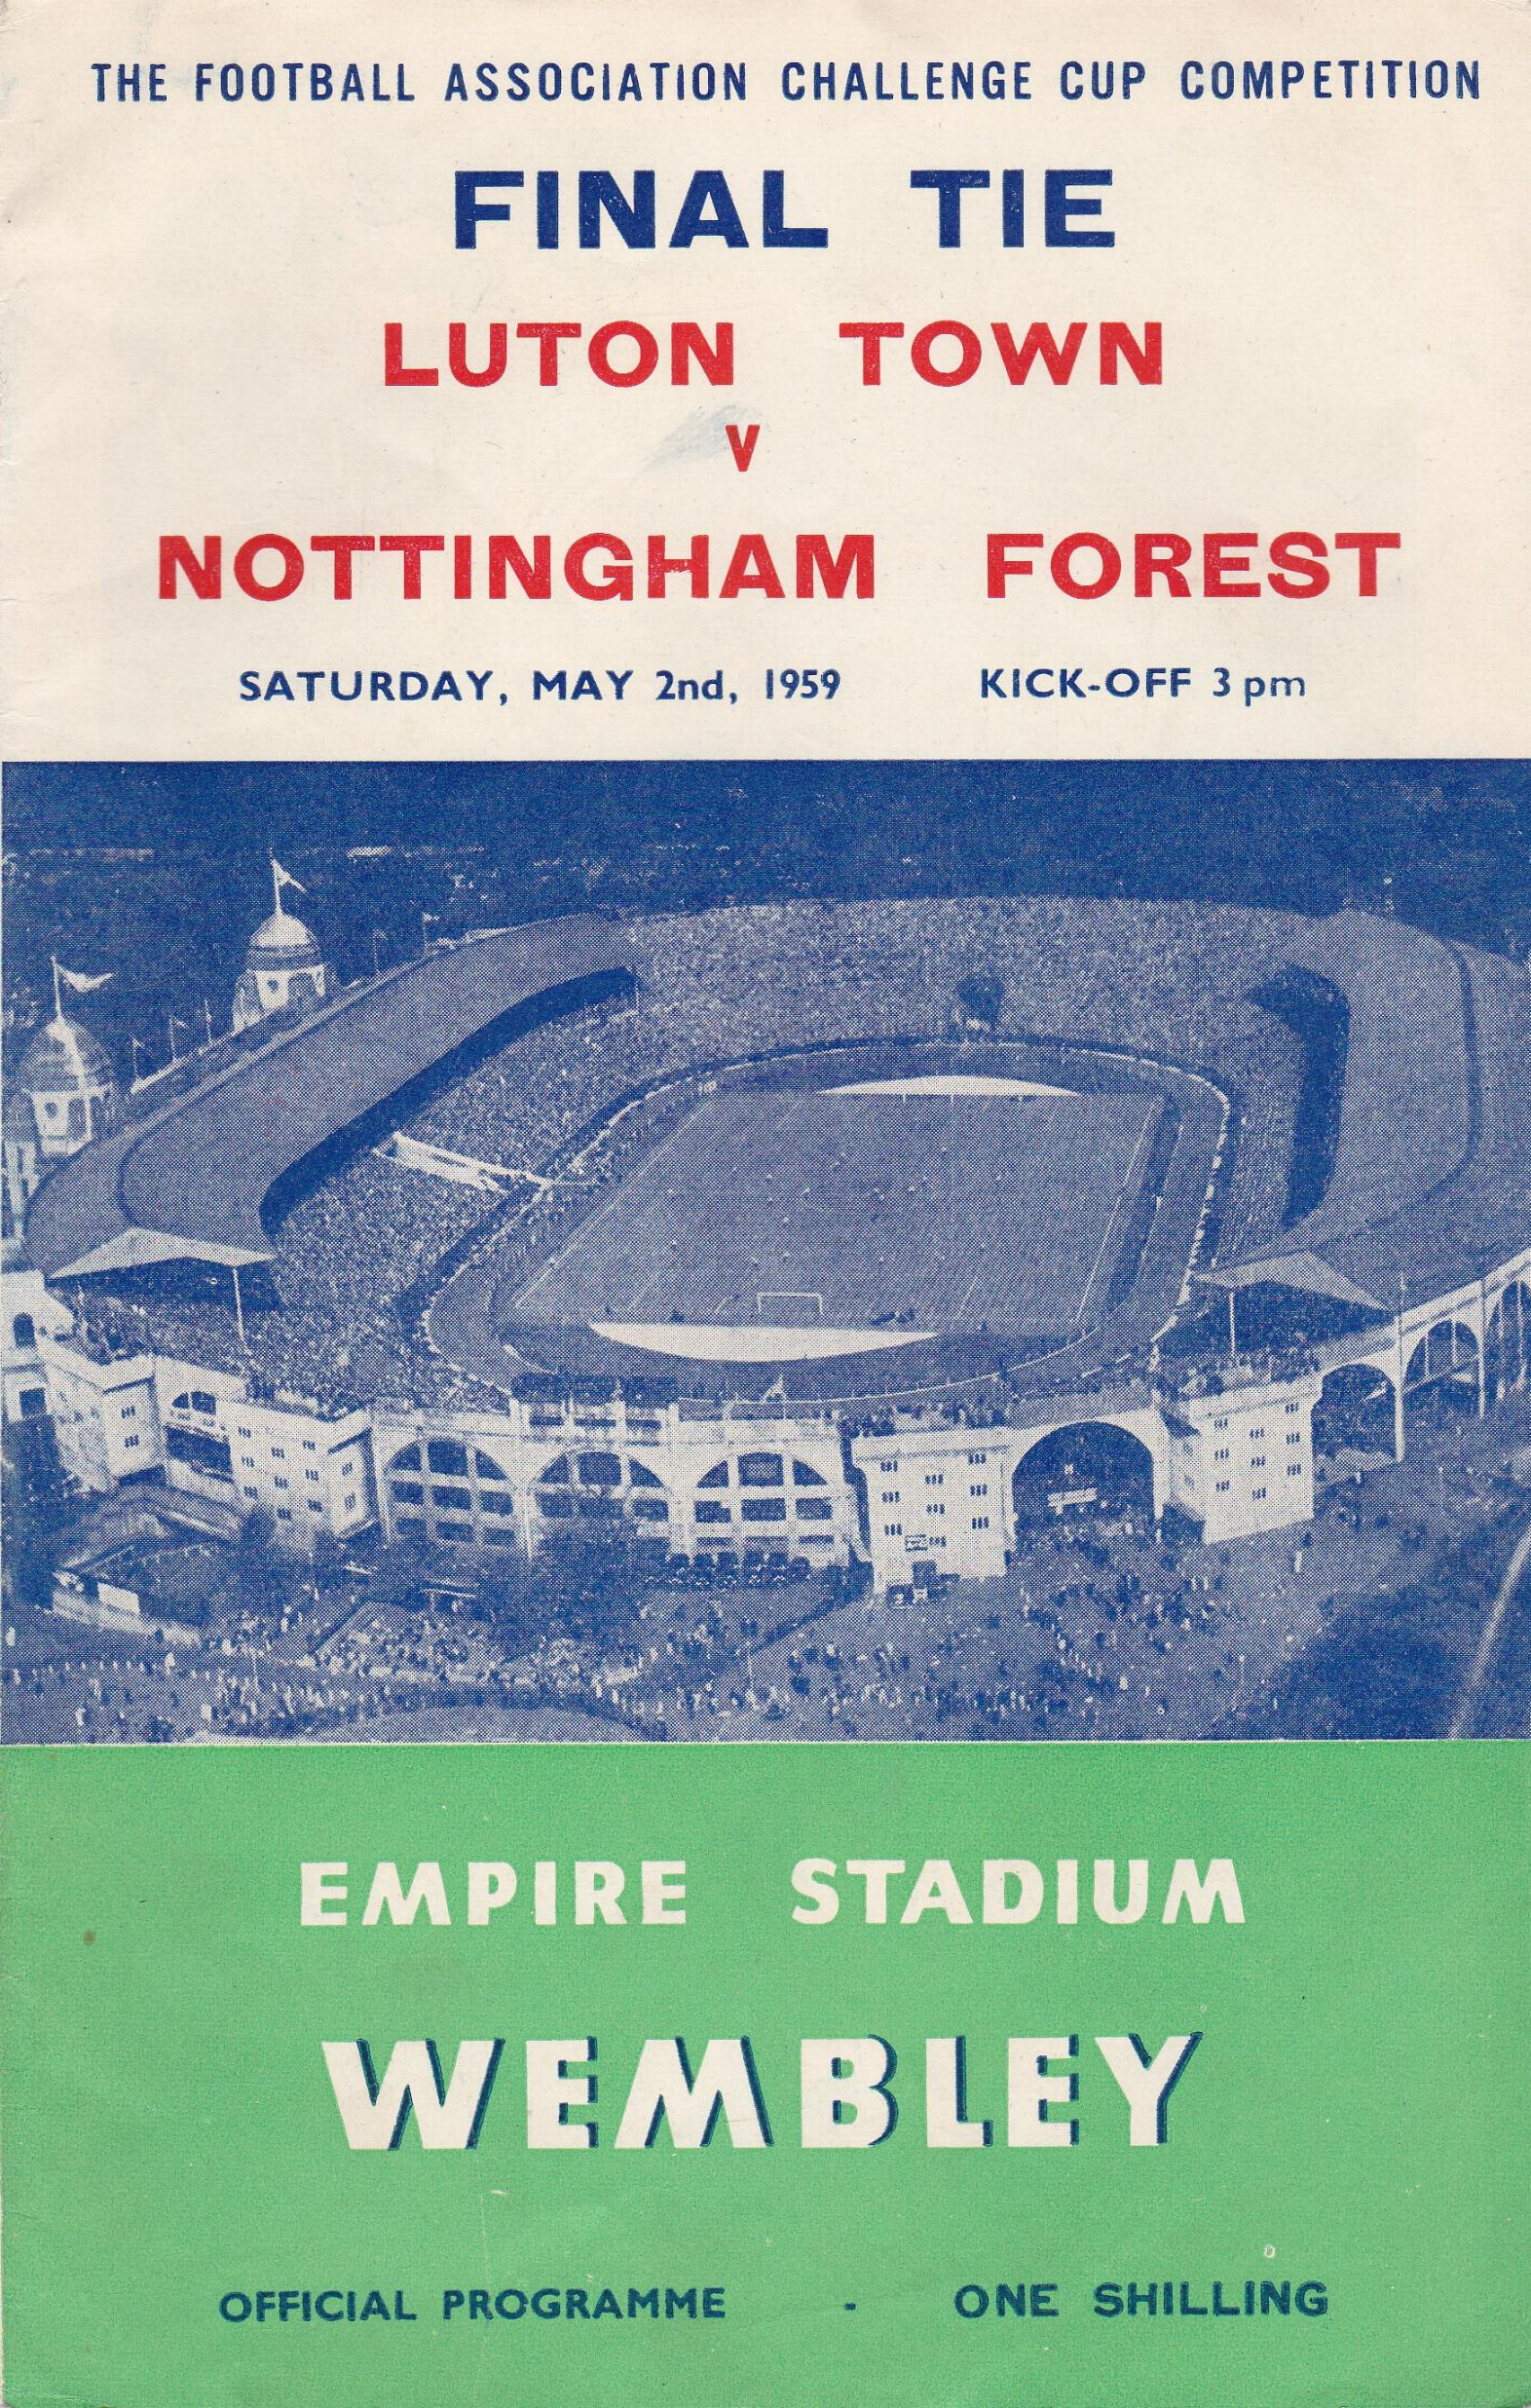 1959 FA CUP FINAL - LUTON TOWN v NOTTINGHAM FOREST